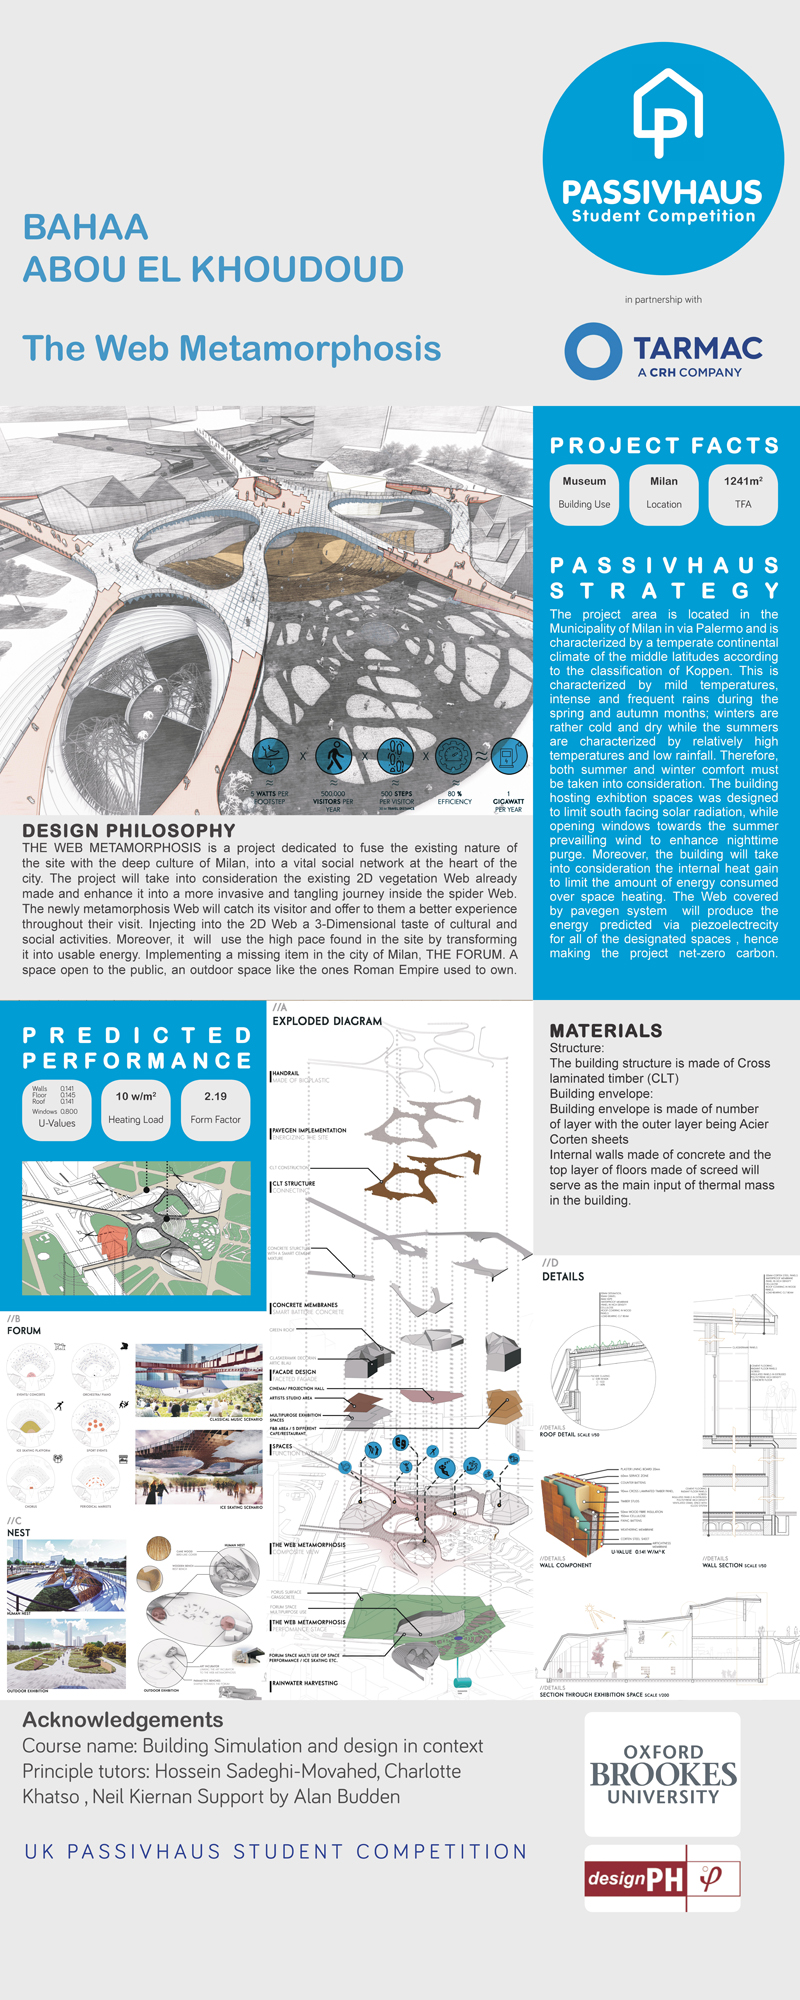 2019 Passivhaus Student Competition: The Web Metamorphosis